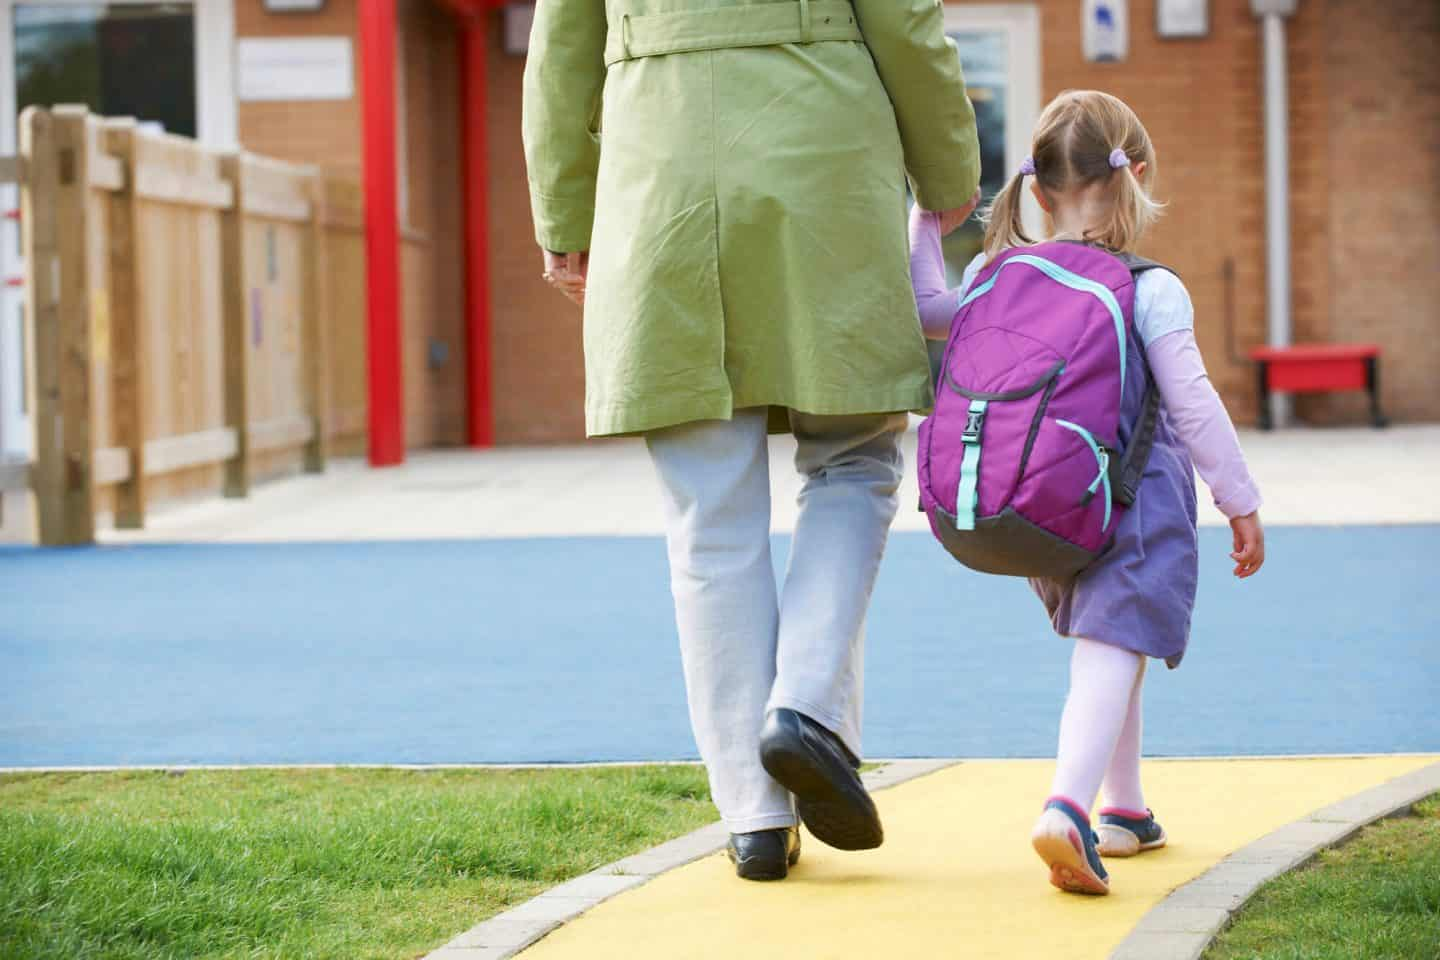 6 Must-Have Supplies for the First Day of Preschool